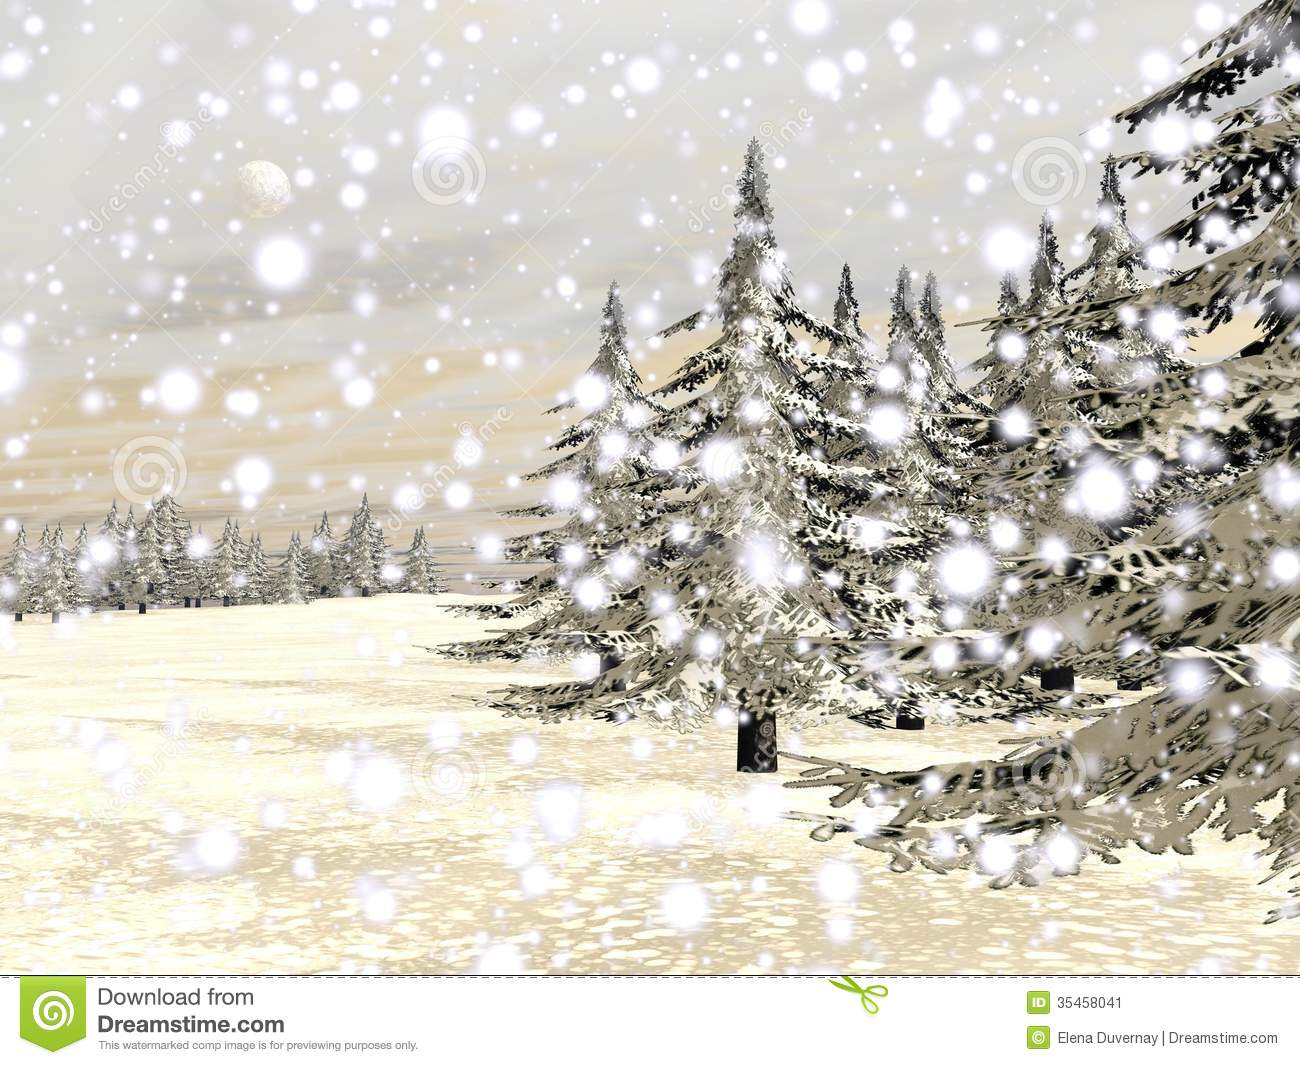 More similar stock images of 3d landscape with fall tree - Winter Snowing Landscape 3d Render Stock Image